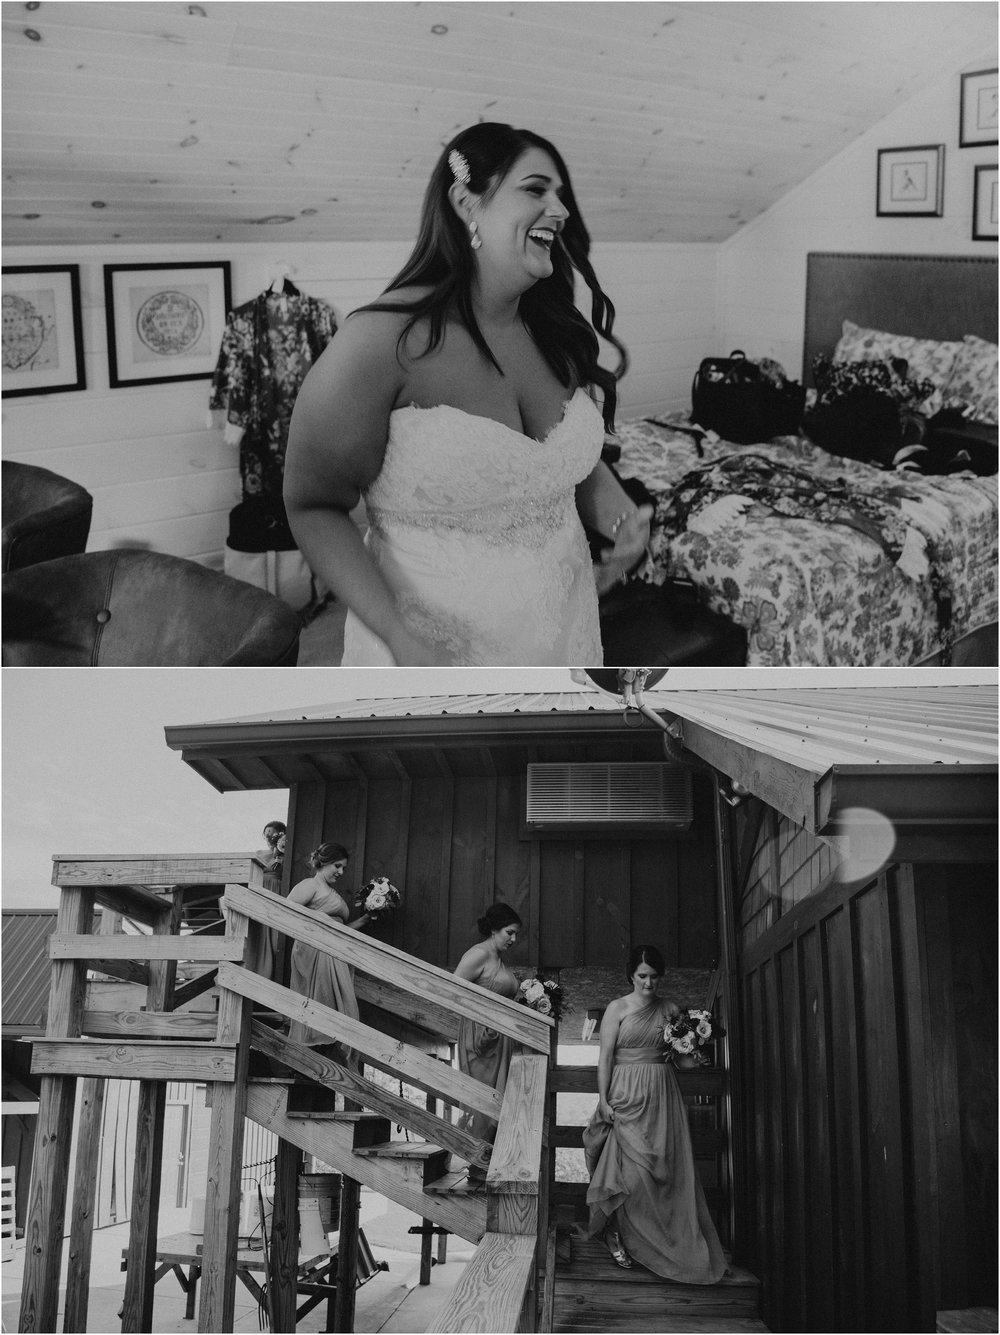 Bride laughs with excitement before heading down the stairs to the wedding ceremony